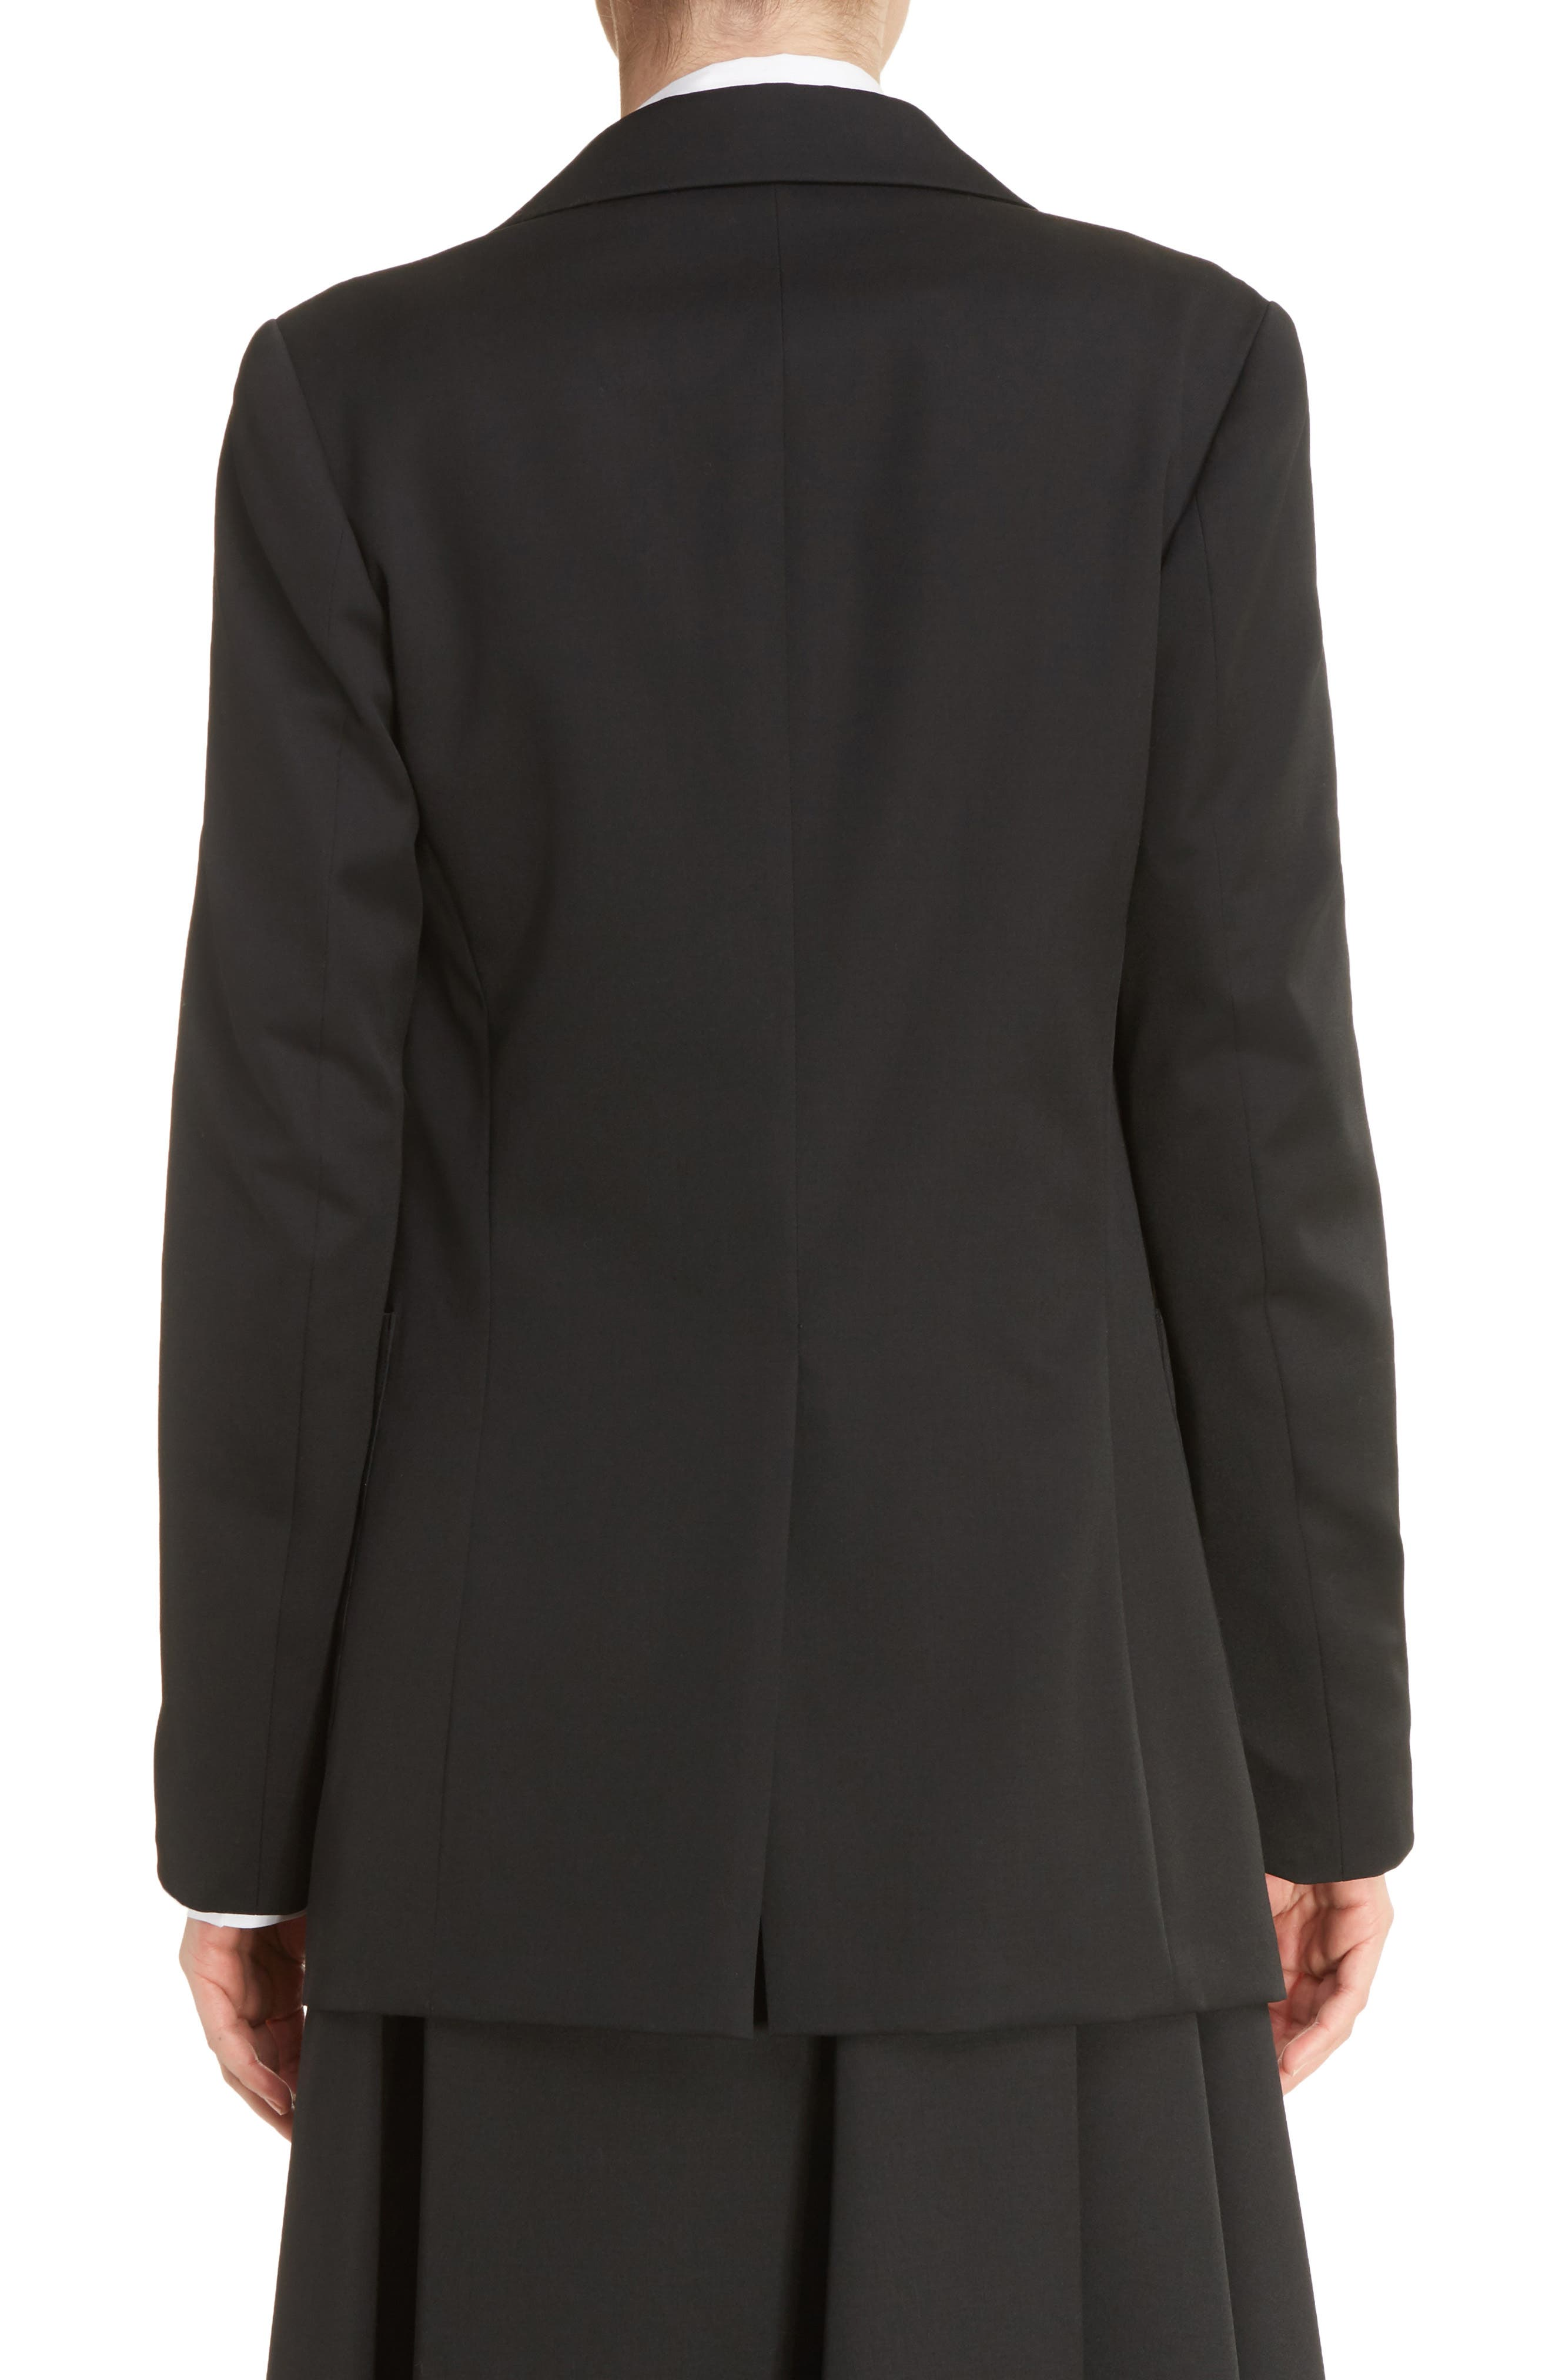 U-Out P Tailored Wool Jacket,                             Alternate thumbnail 2, color,                             001